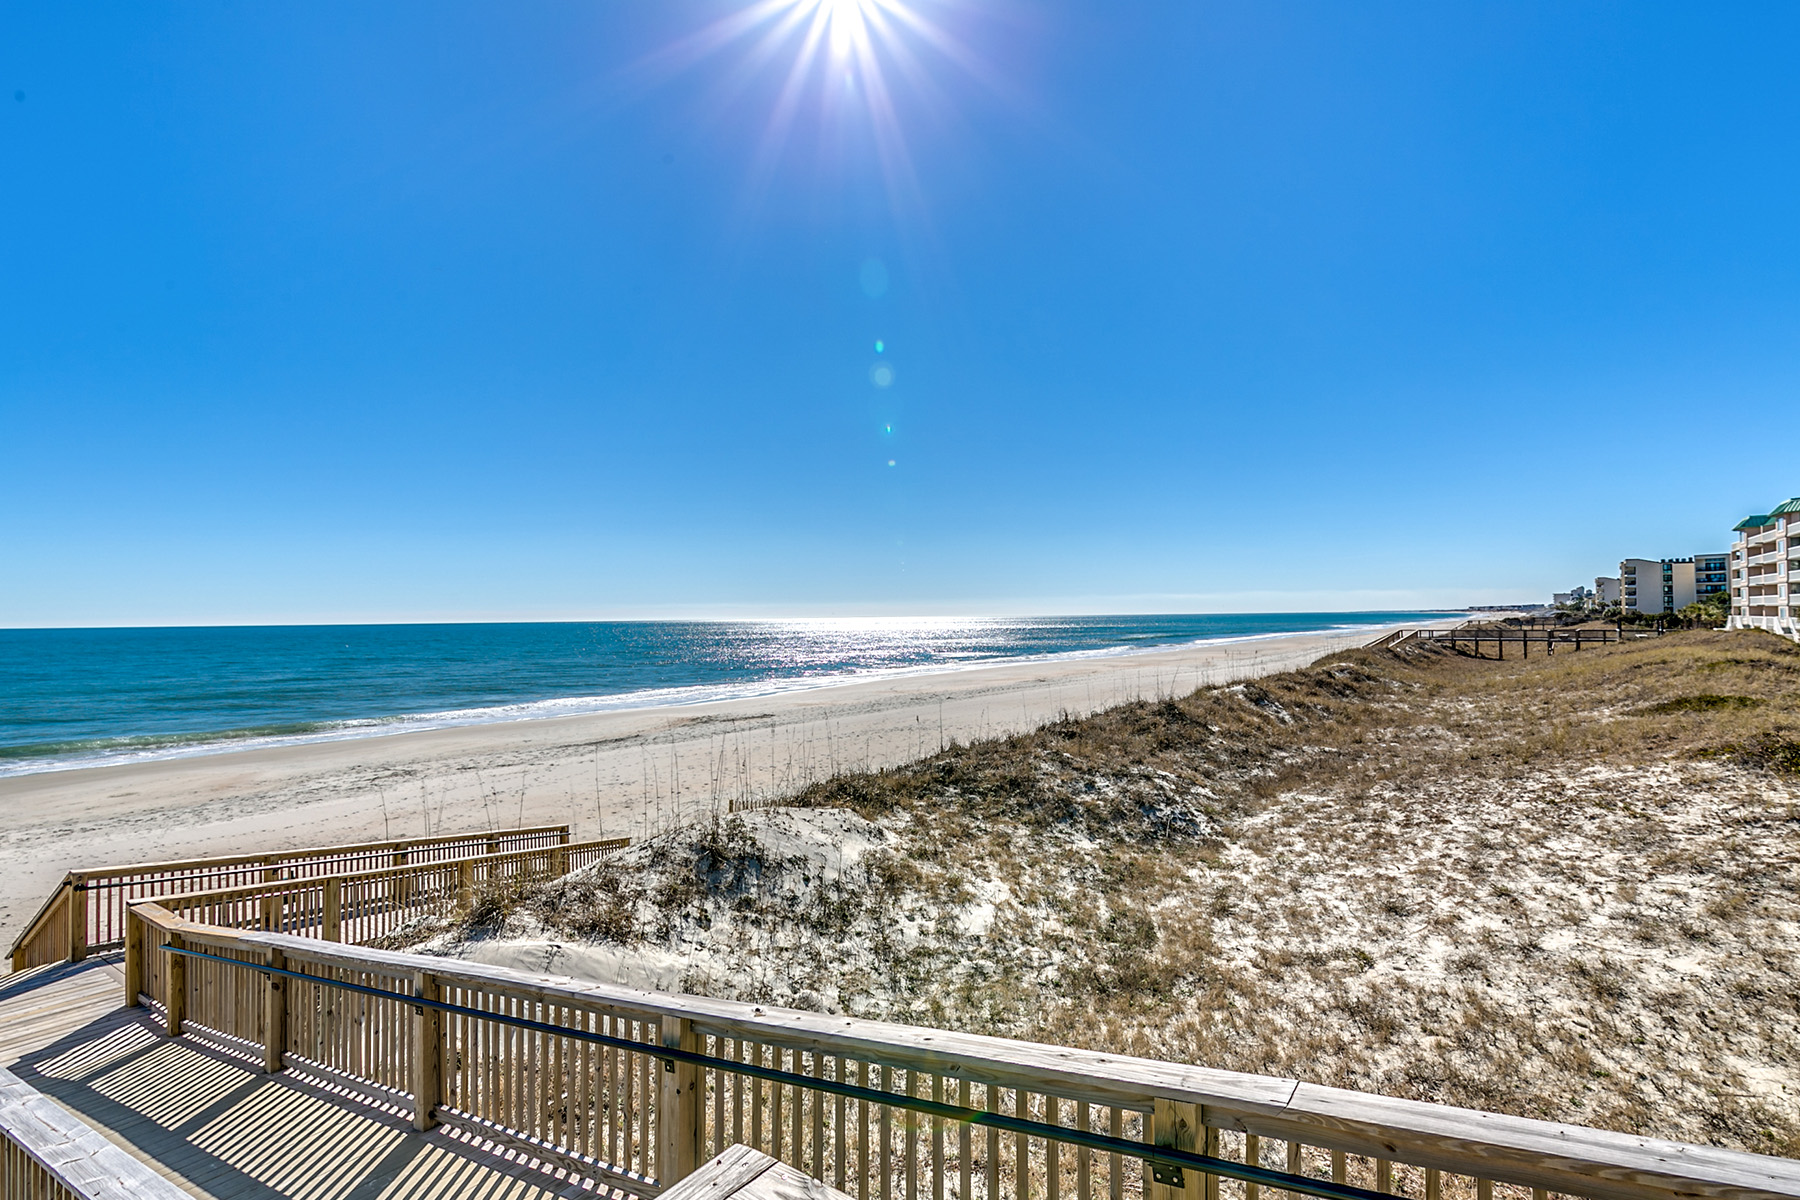 Additional photo for property listing at 124 S Dunes Drive, Pawleys Island, SC 29585 124 S Dunes Drive Pawleys Island, South Carolina 29585 United States